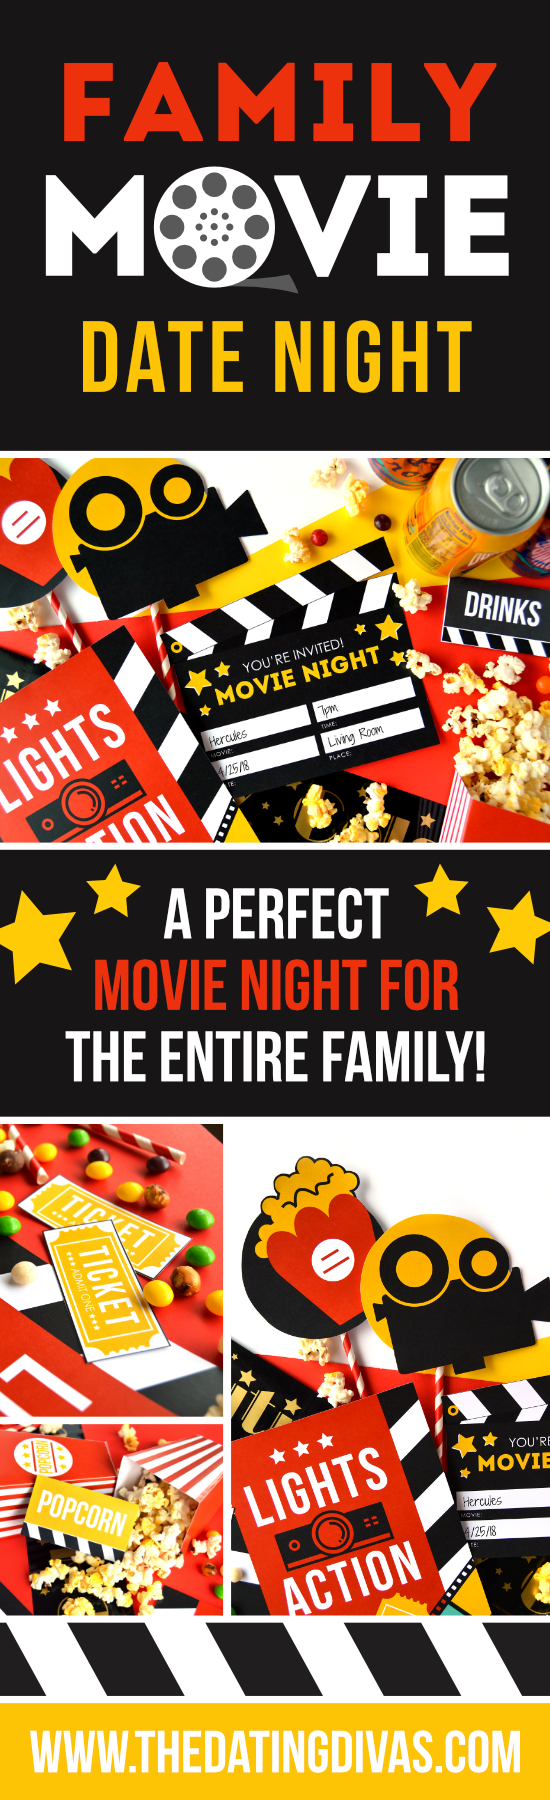 movie night poster ideas